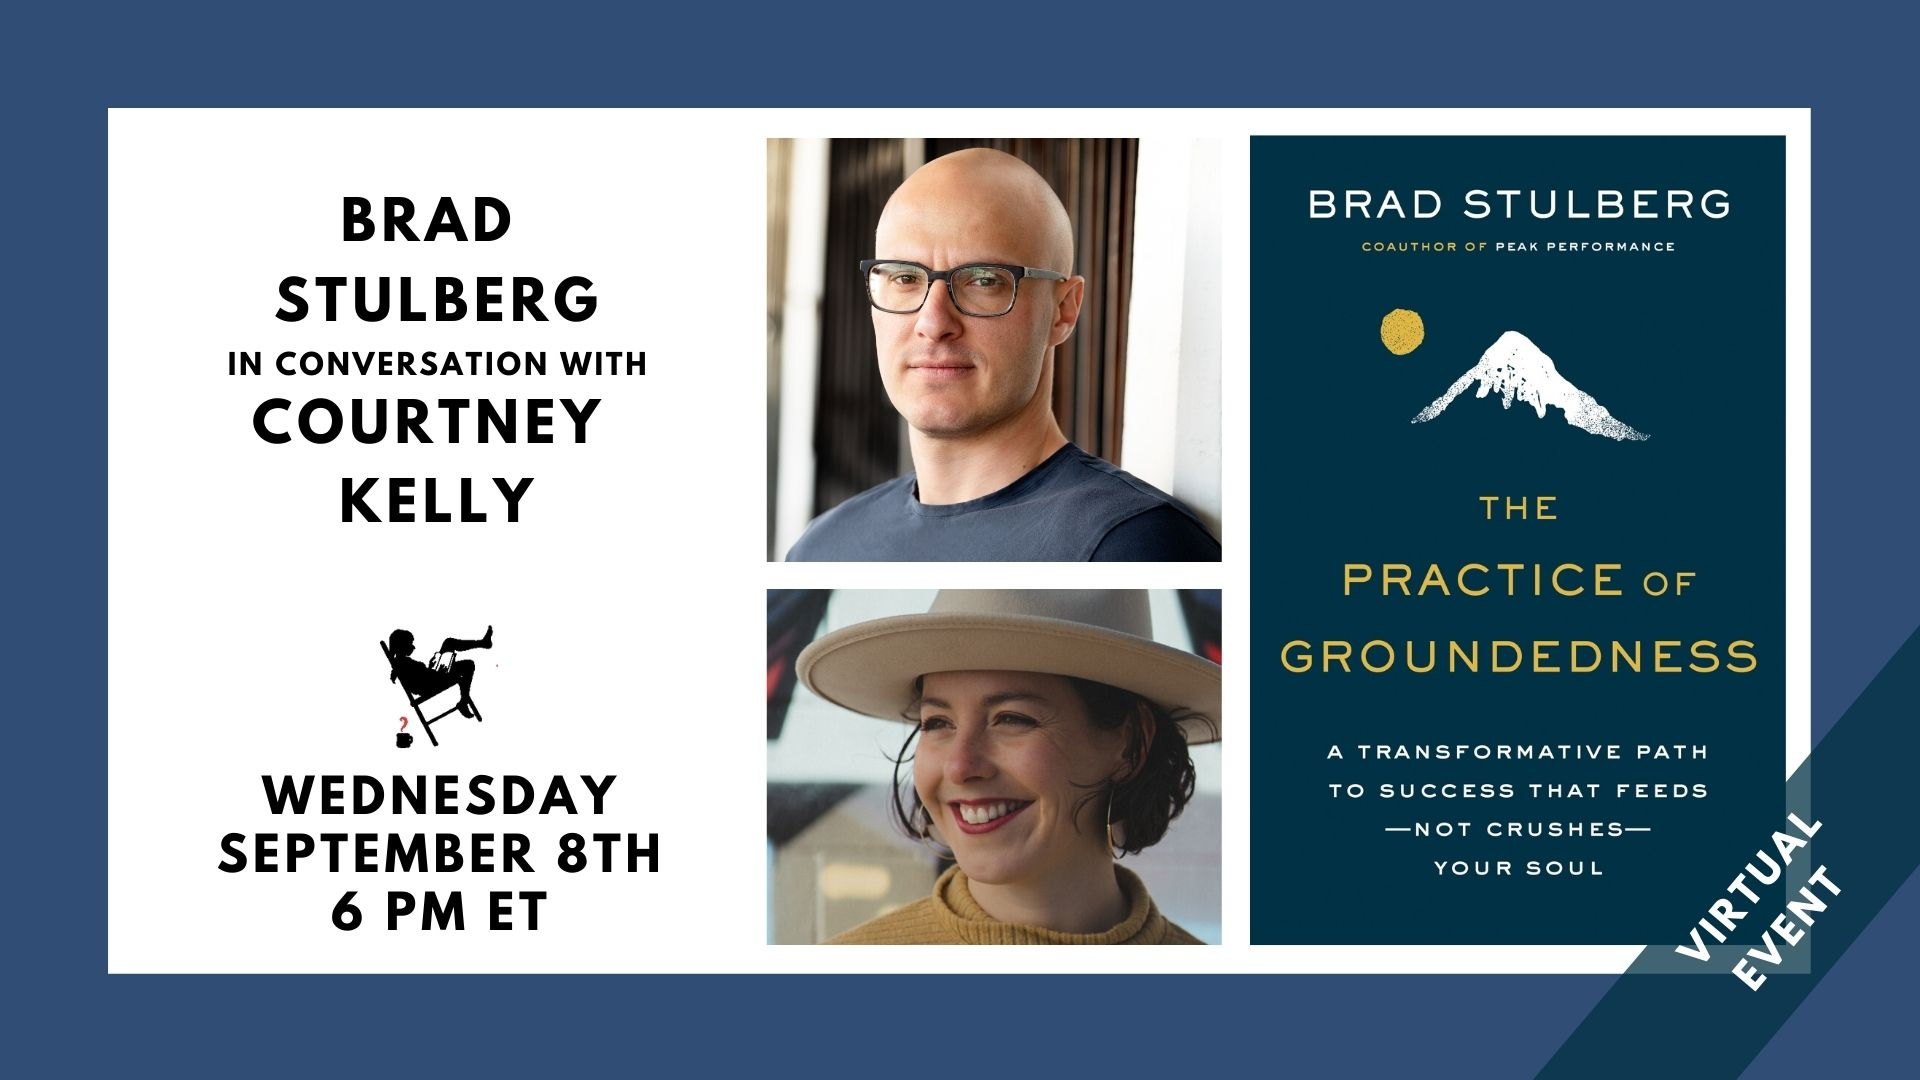 Image shows a blue border with a white box containing the text: Brad Stulberg in conversation with Courtney Kelly. Wednesday, September 8 at 6 PM ET. Virtual Event. Next to the text are photos of both people named and the cover of the Brad Stulberg's book THE PRACTICE OF GROUNDEDNESS